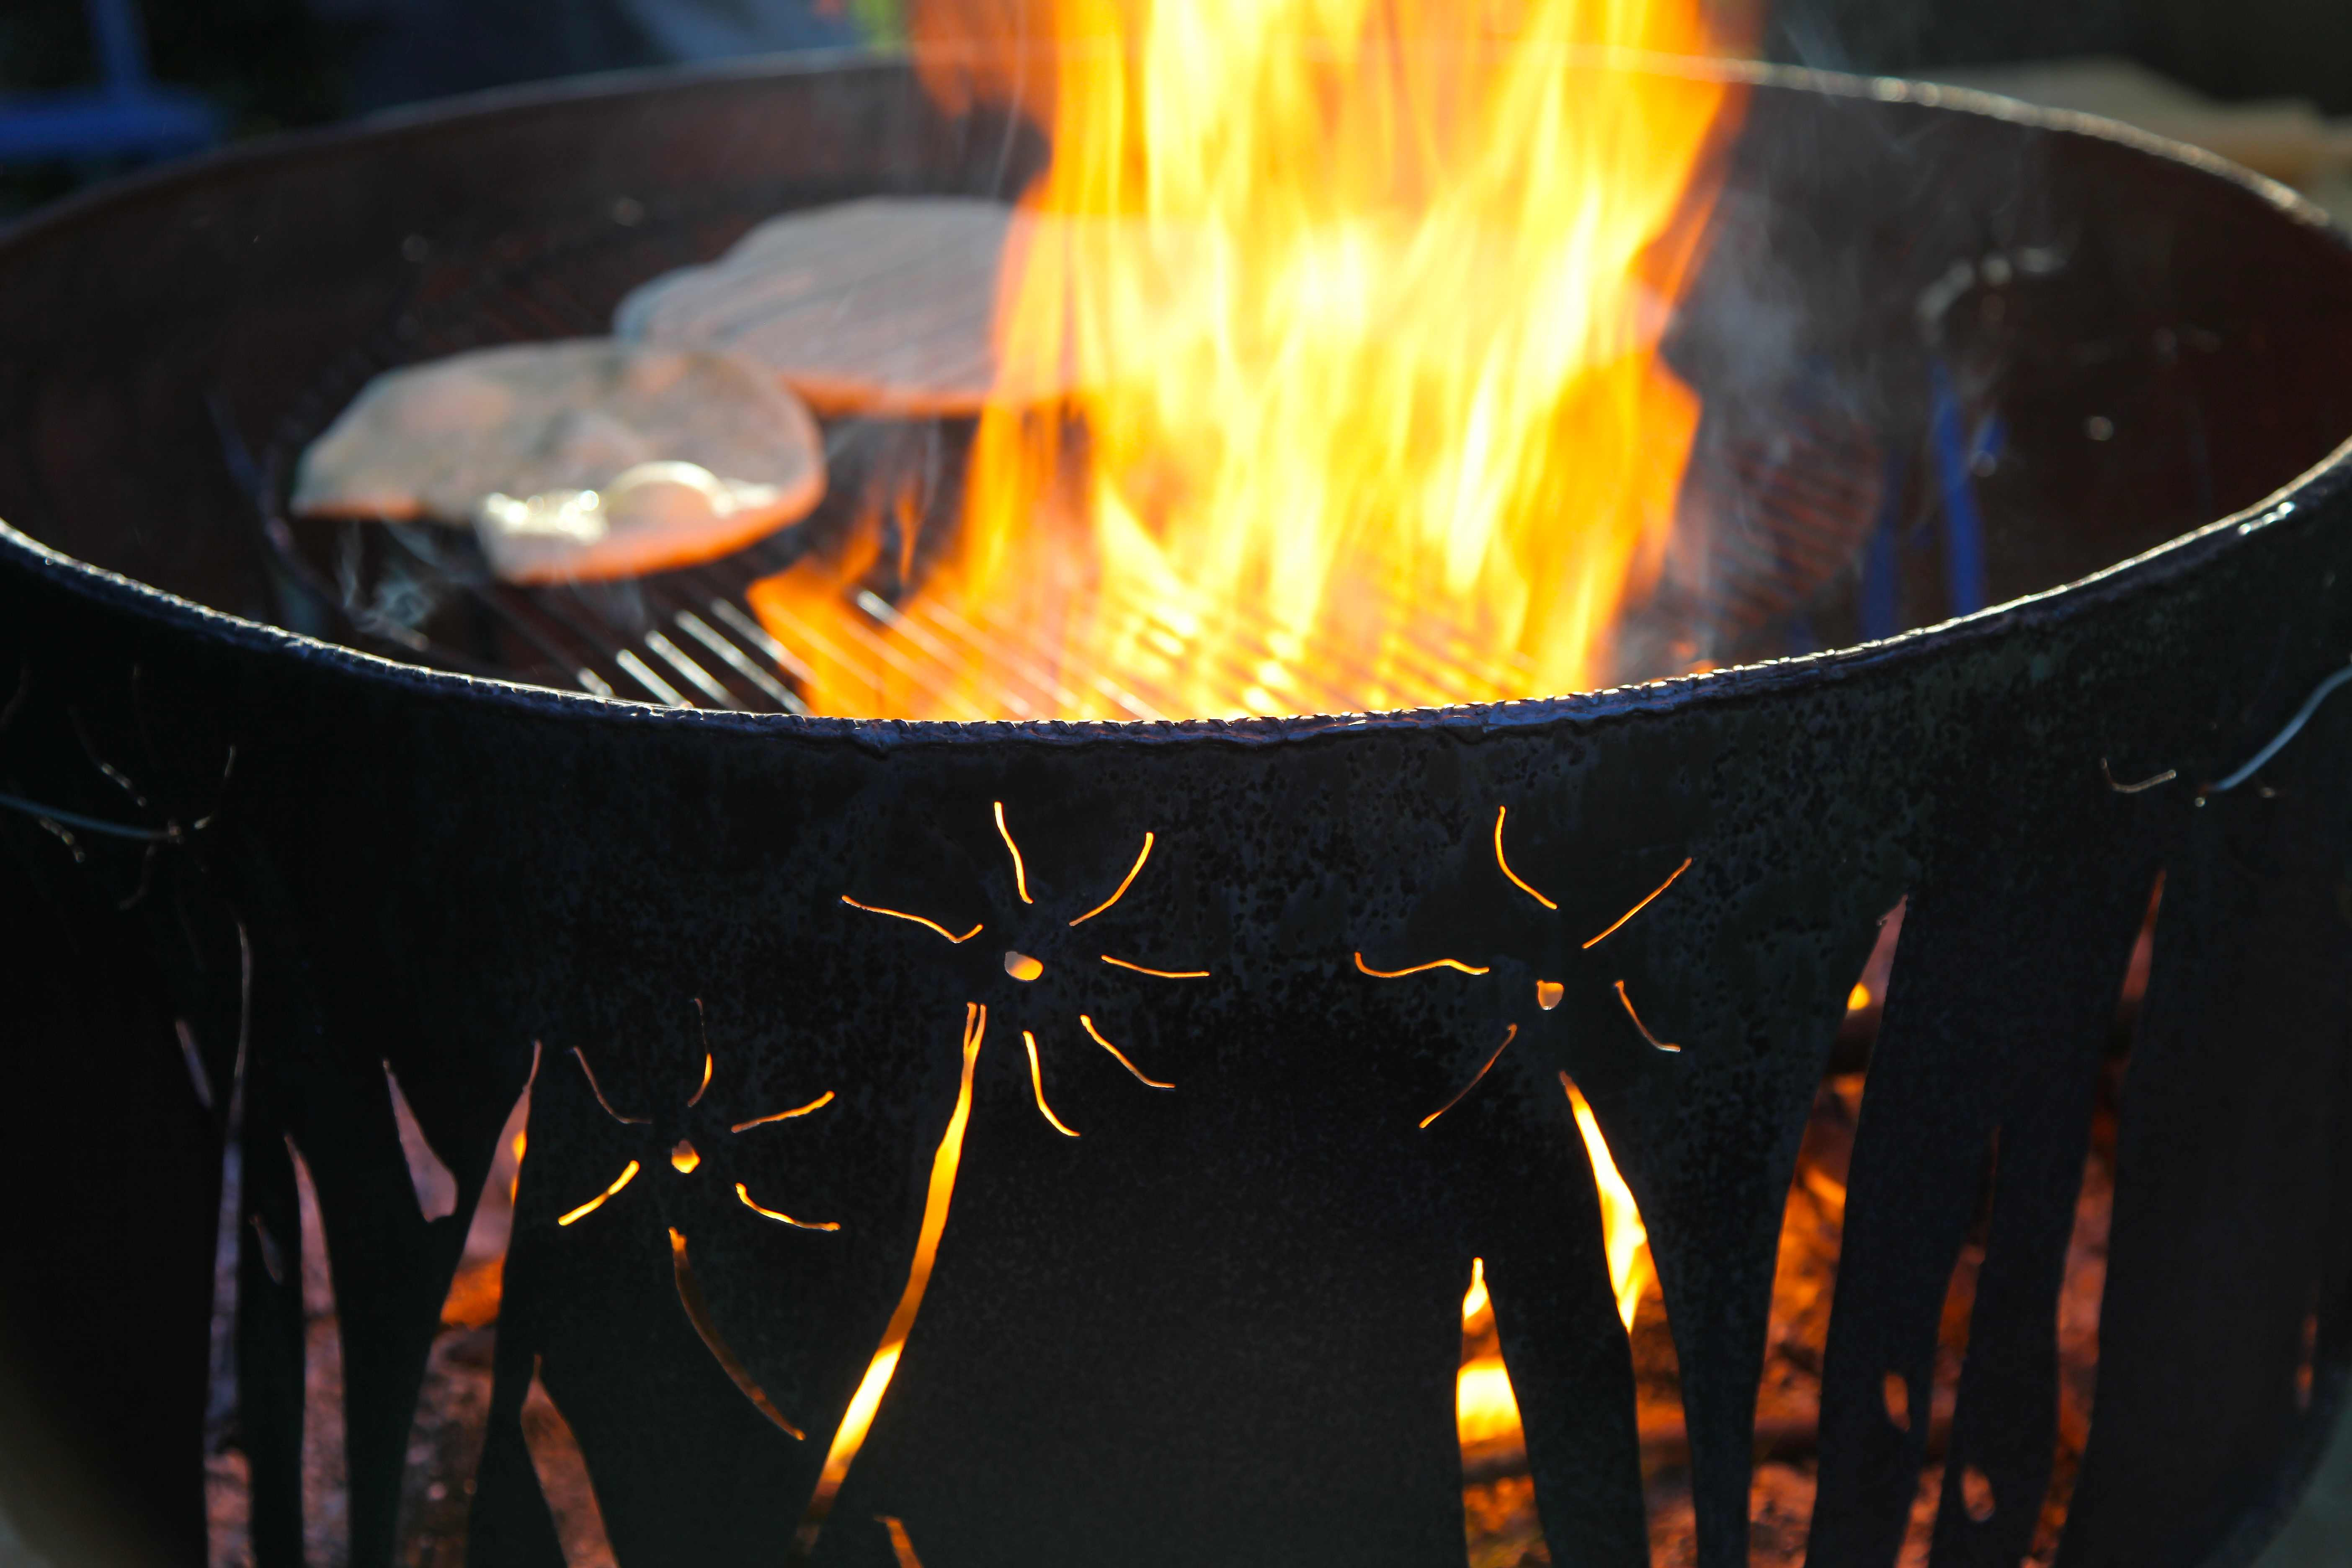 10 DIY Upcycled Fire Pits | Buy Nothing Project